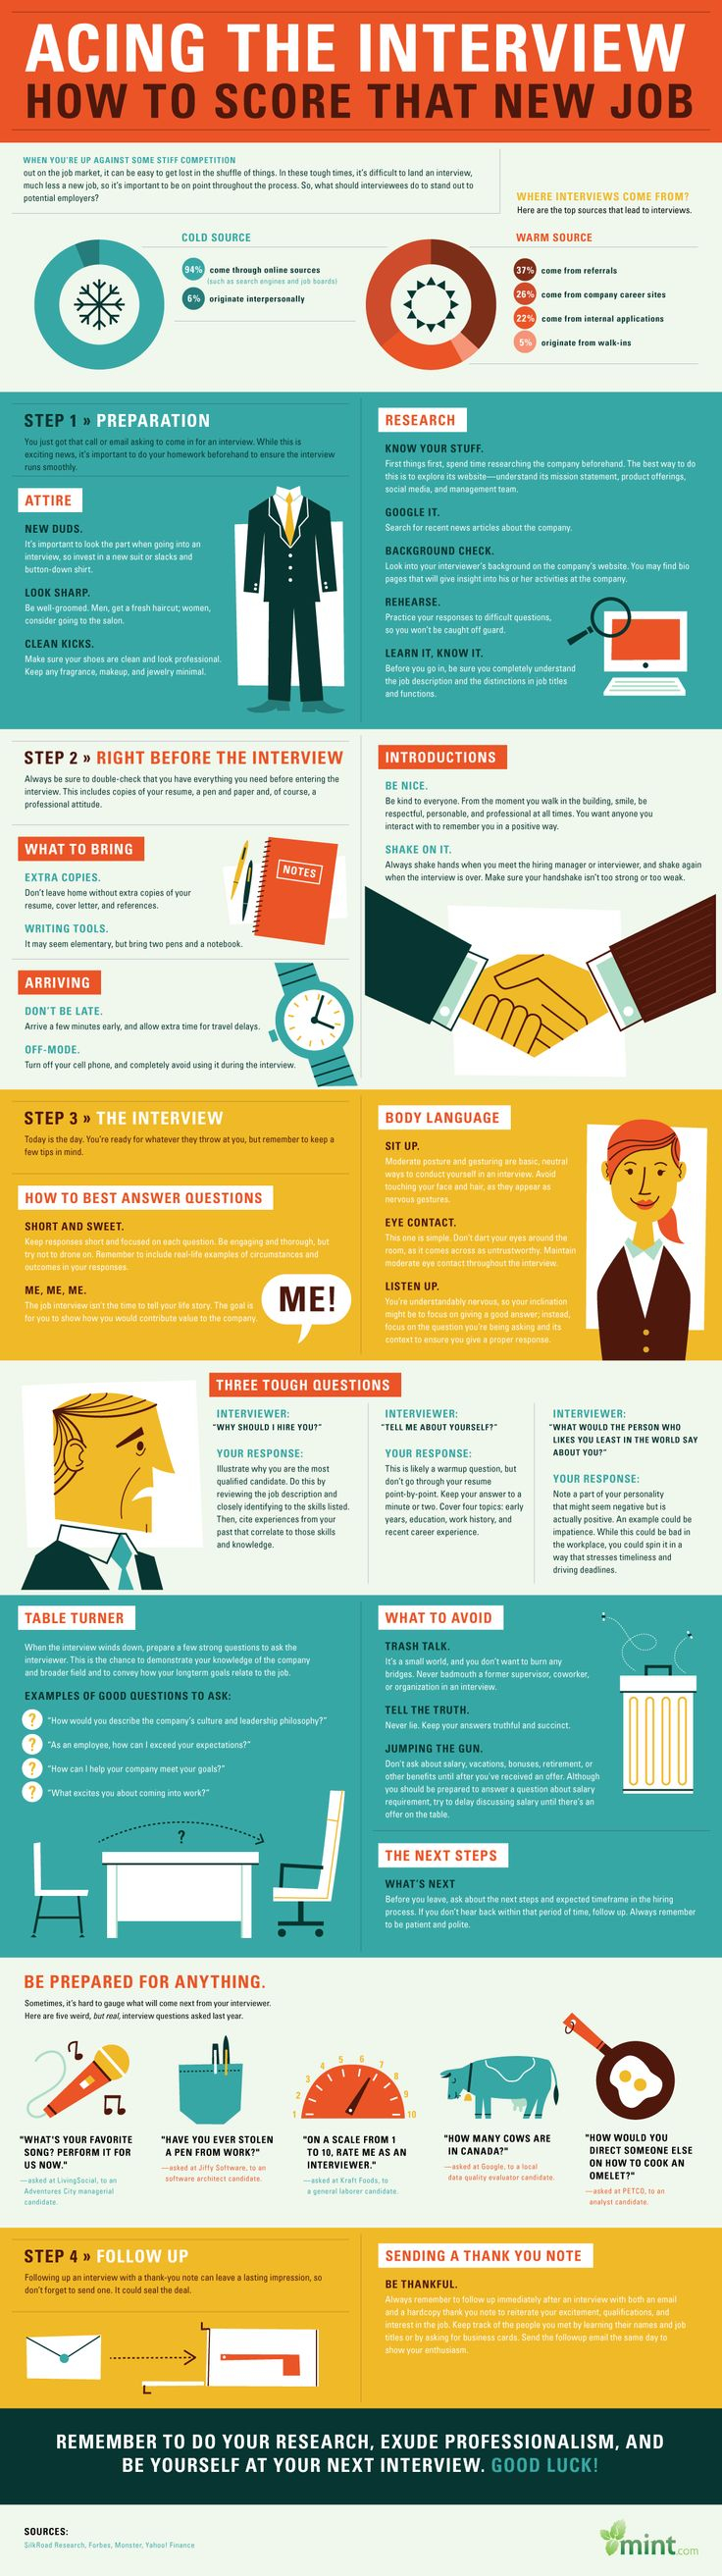 how to sell yourself interview